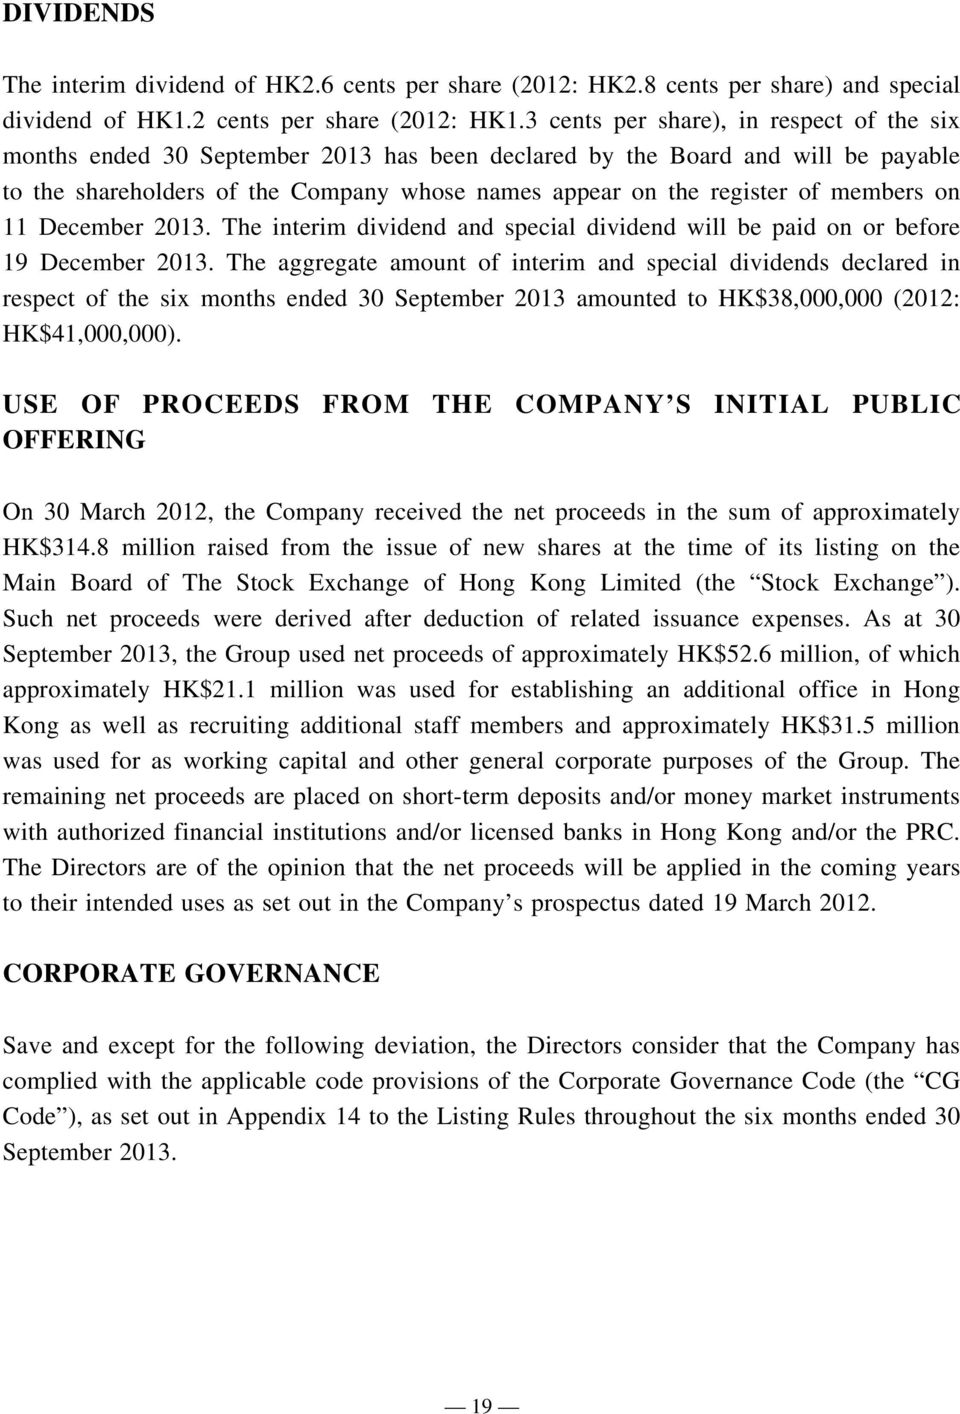 members on 11 December 2013. The interim dividend and special dividend will be paid on or before 19 December 2013.